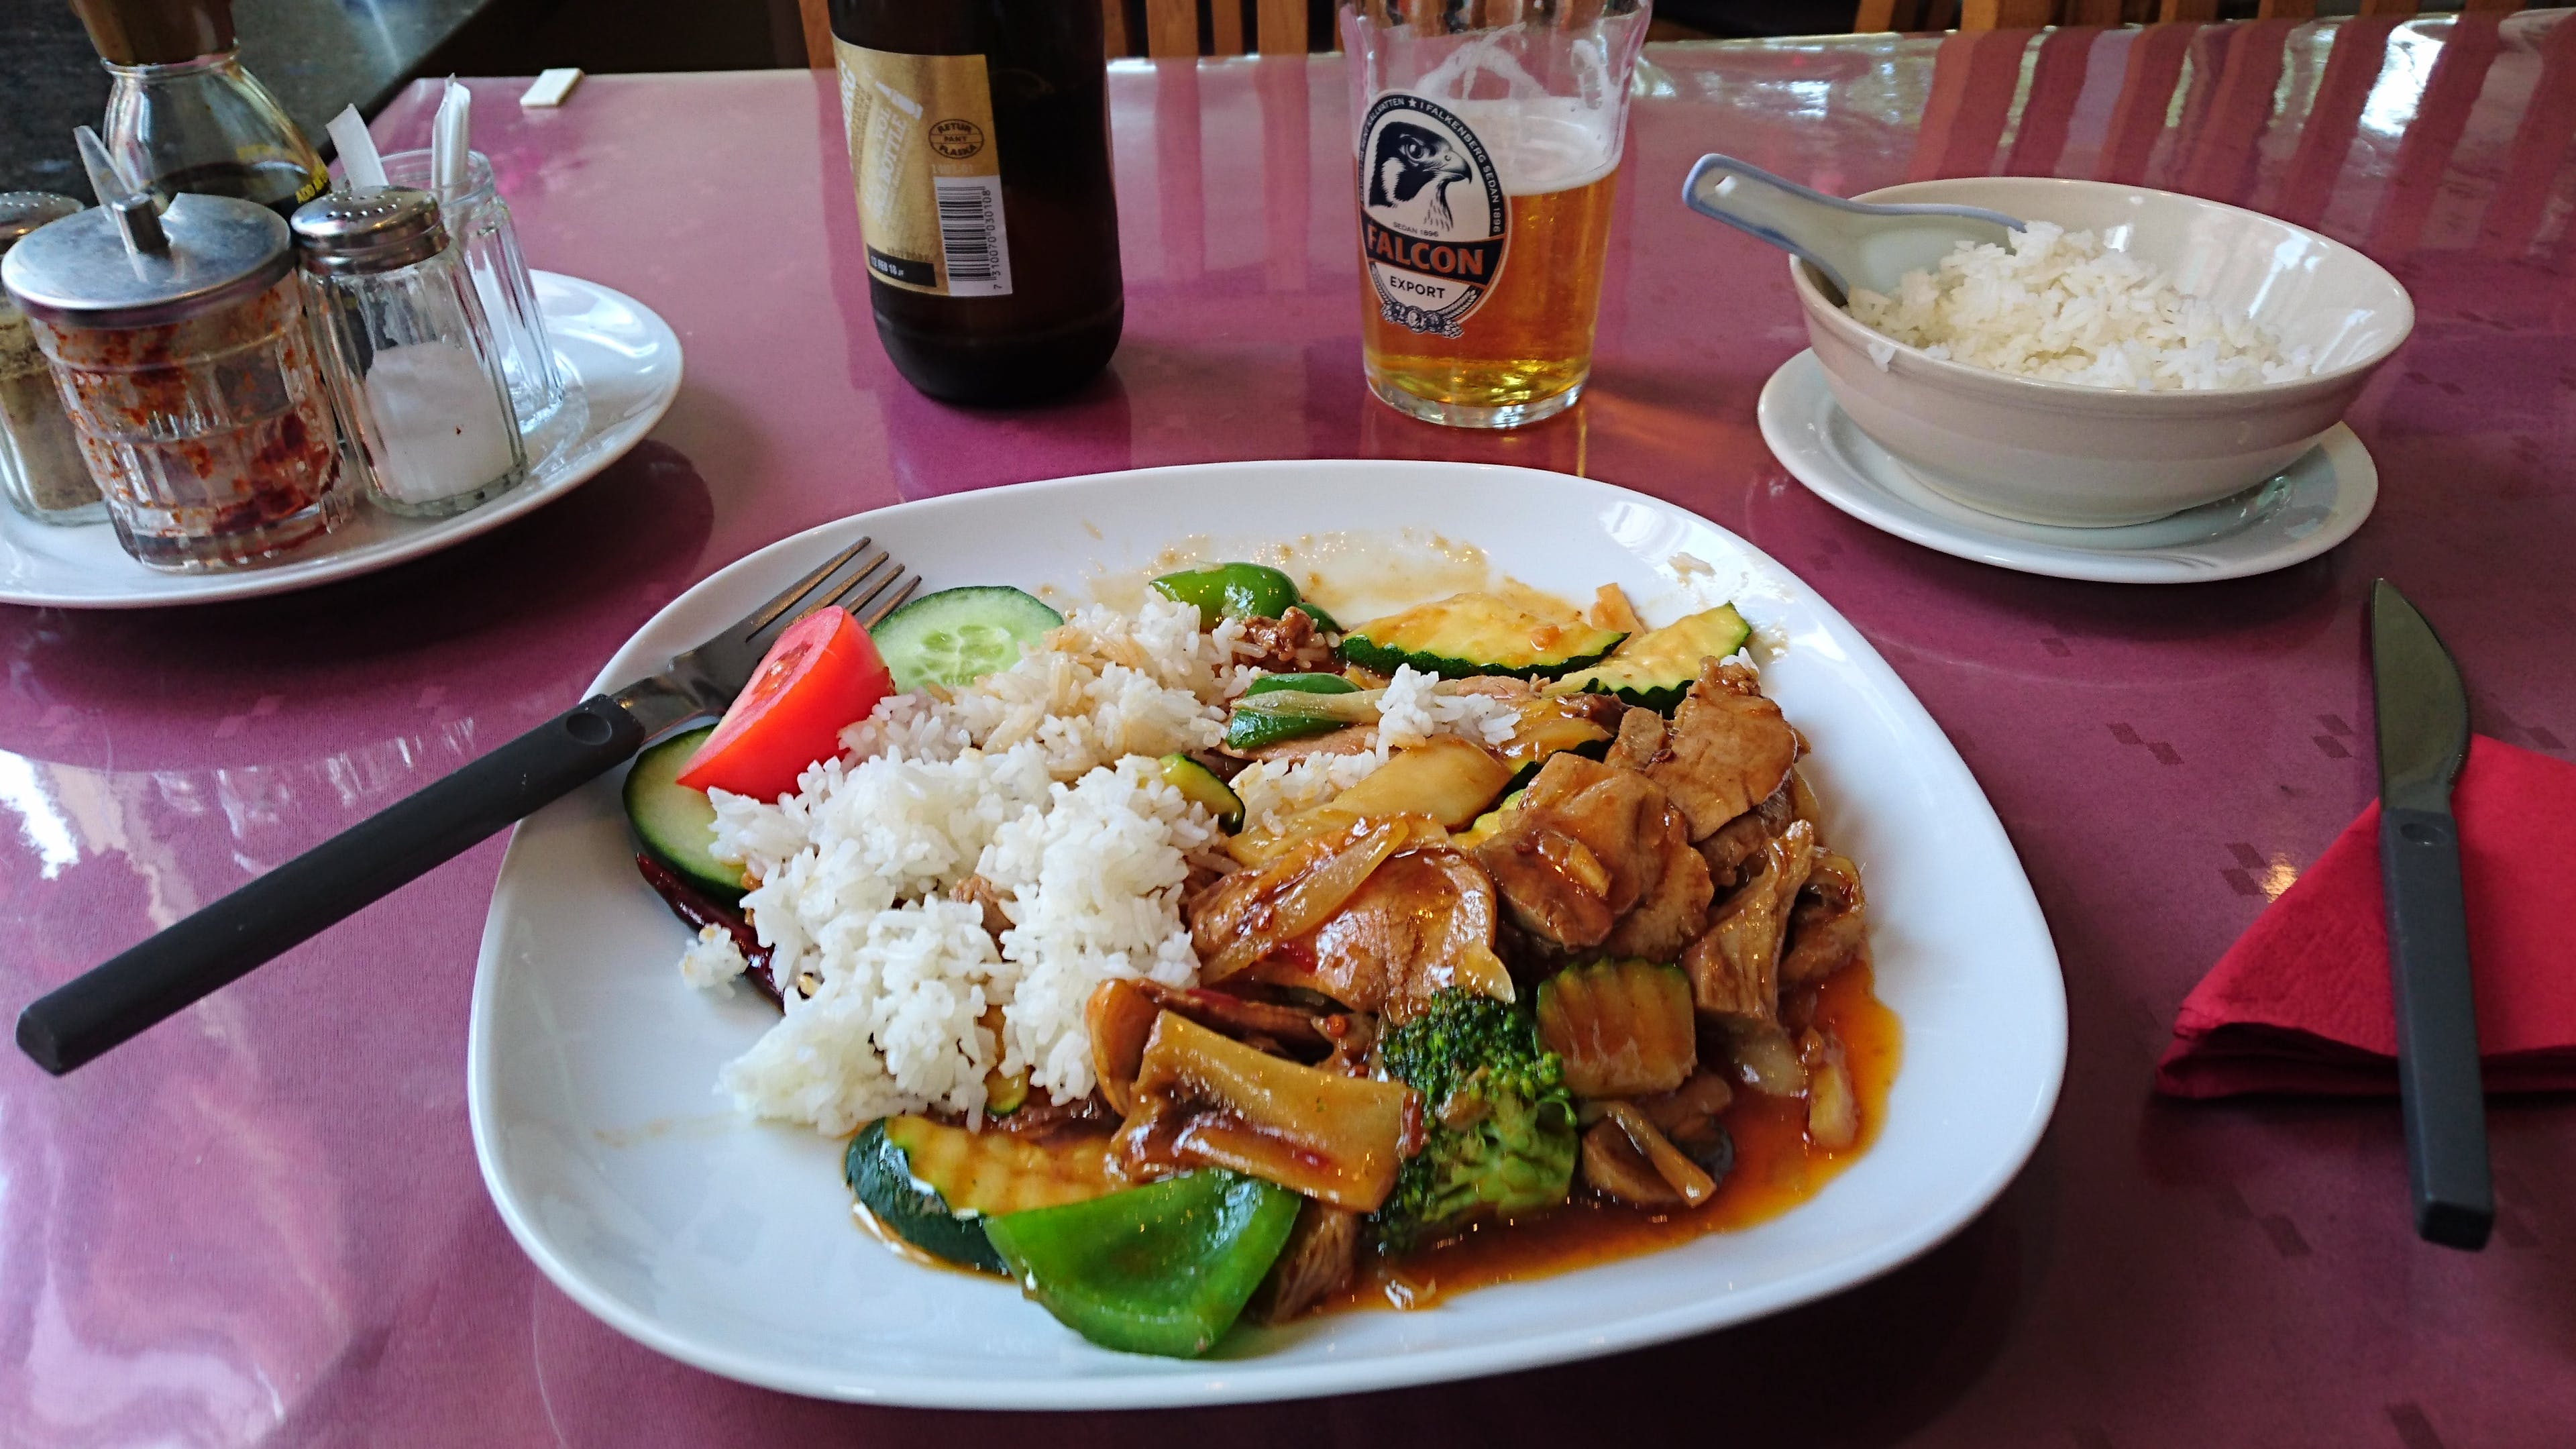 Dish With Rice on Plate